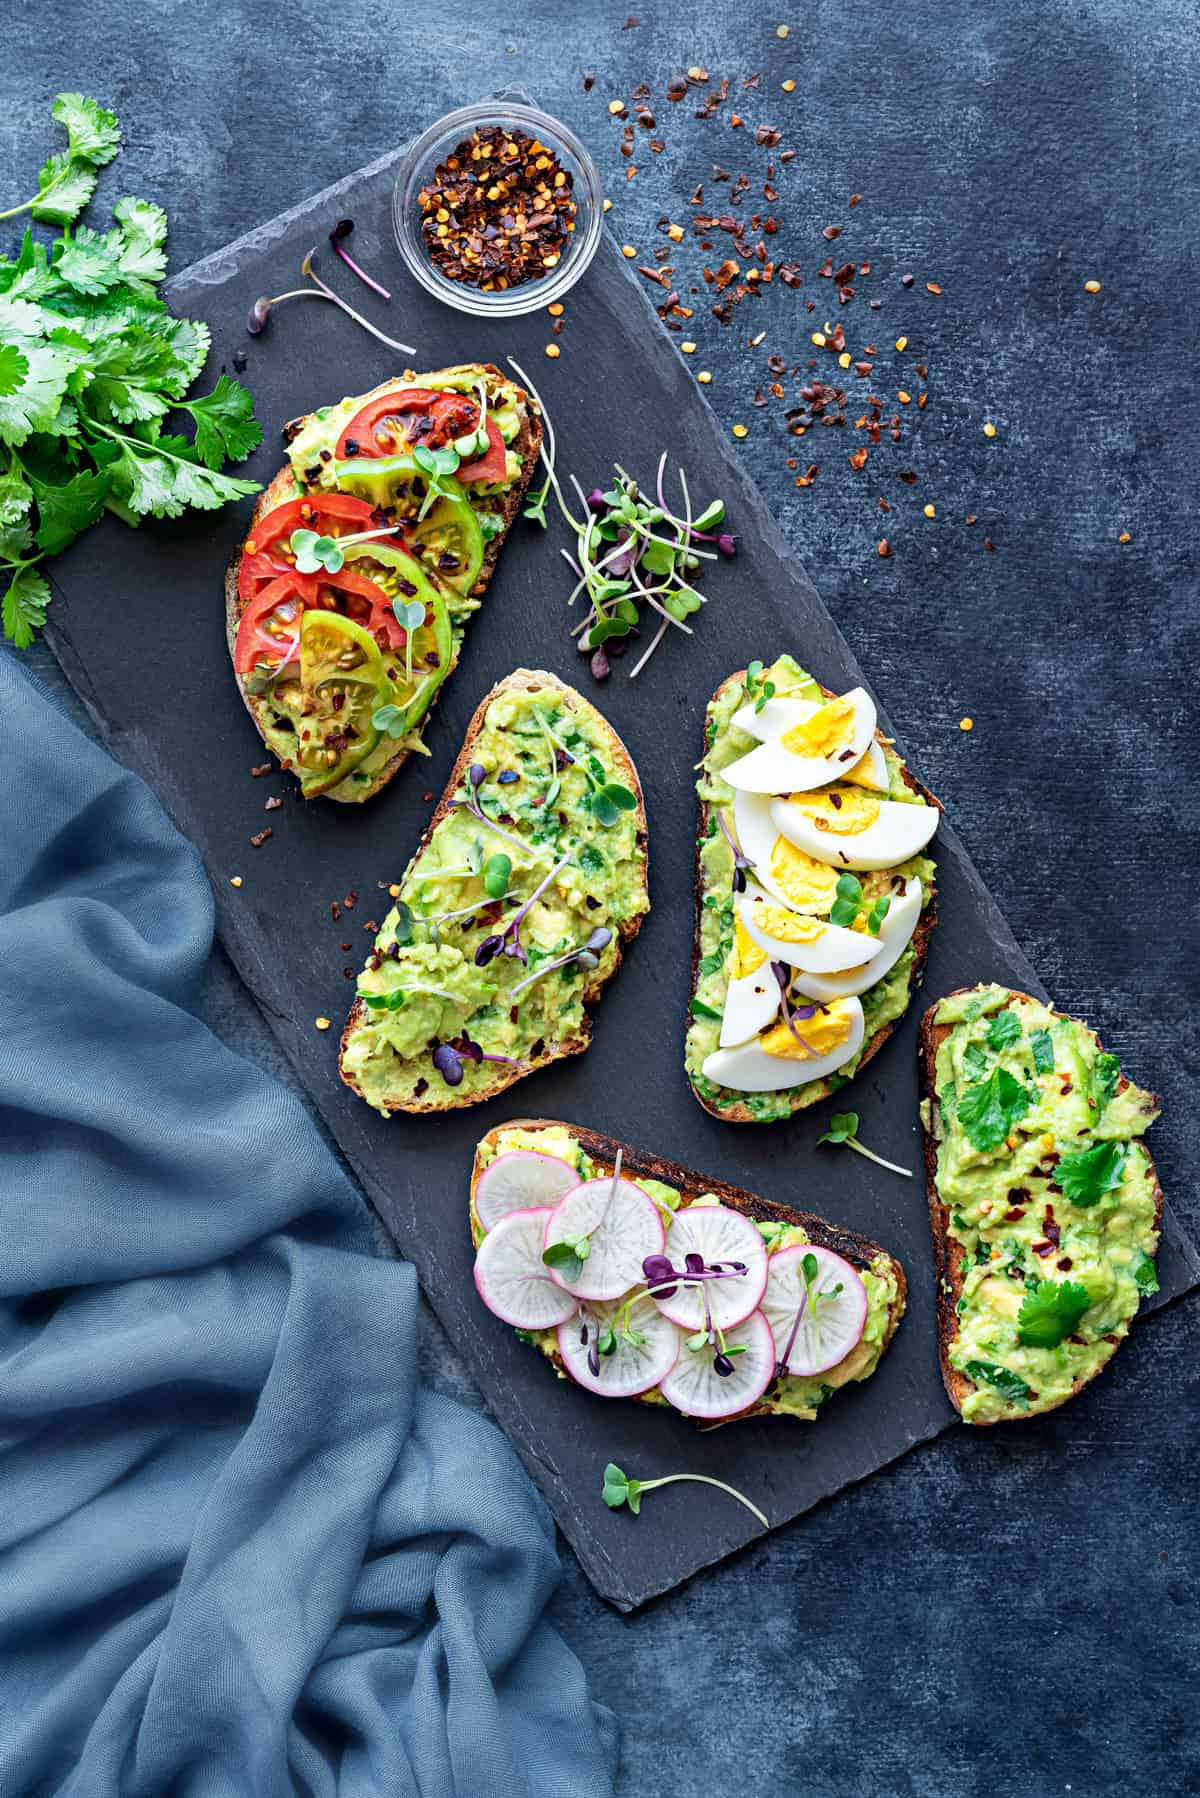 overhead shot of avocado toast with different topping ideas - microgreens, boiled egg, sliced radishes, and tomatoes